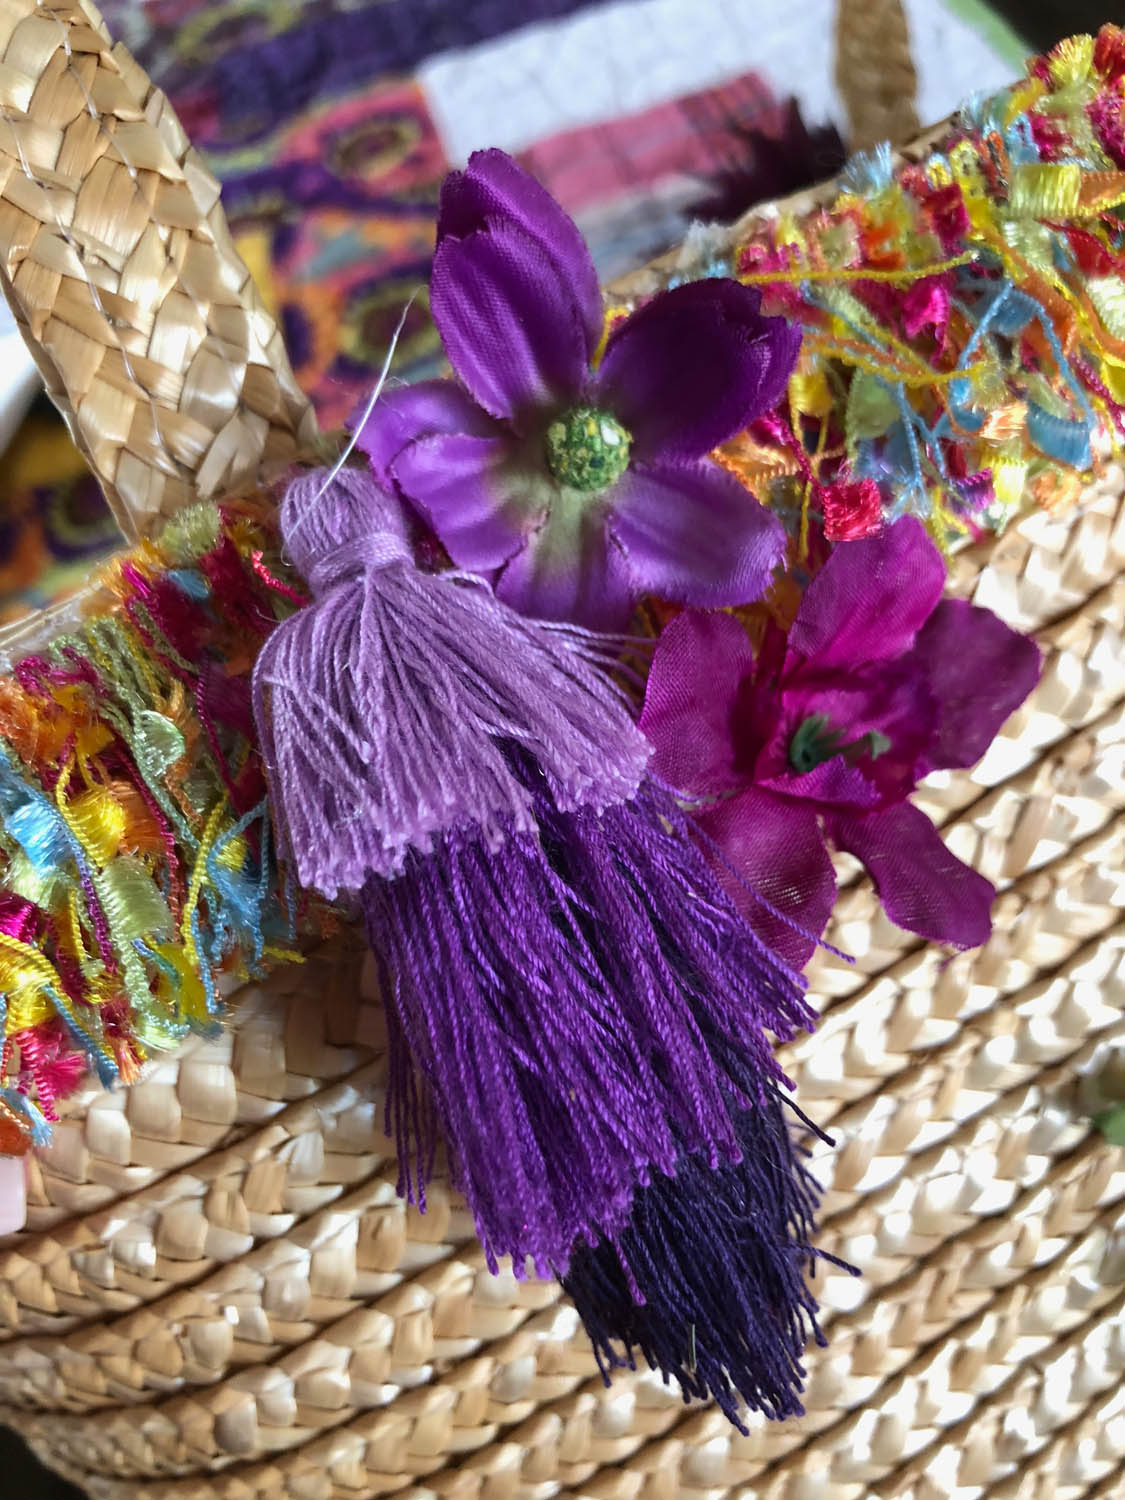 silk flowers and tassels on an embellished straw tote